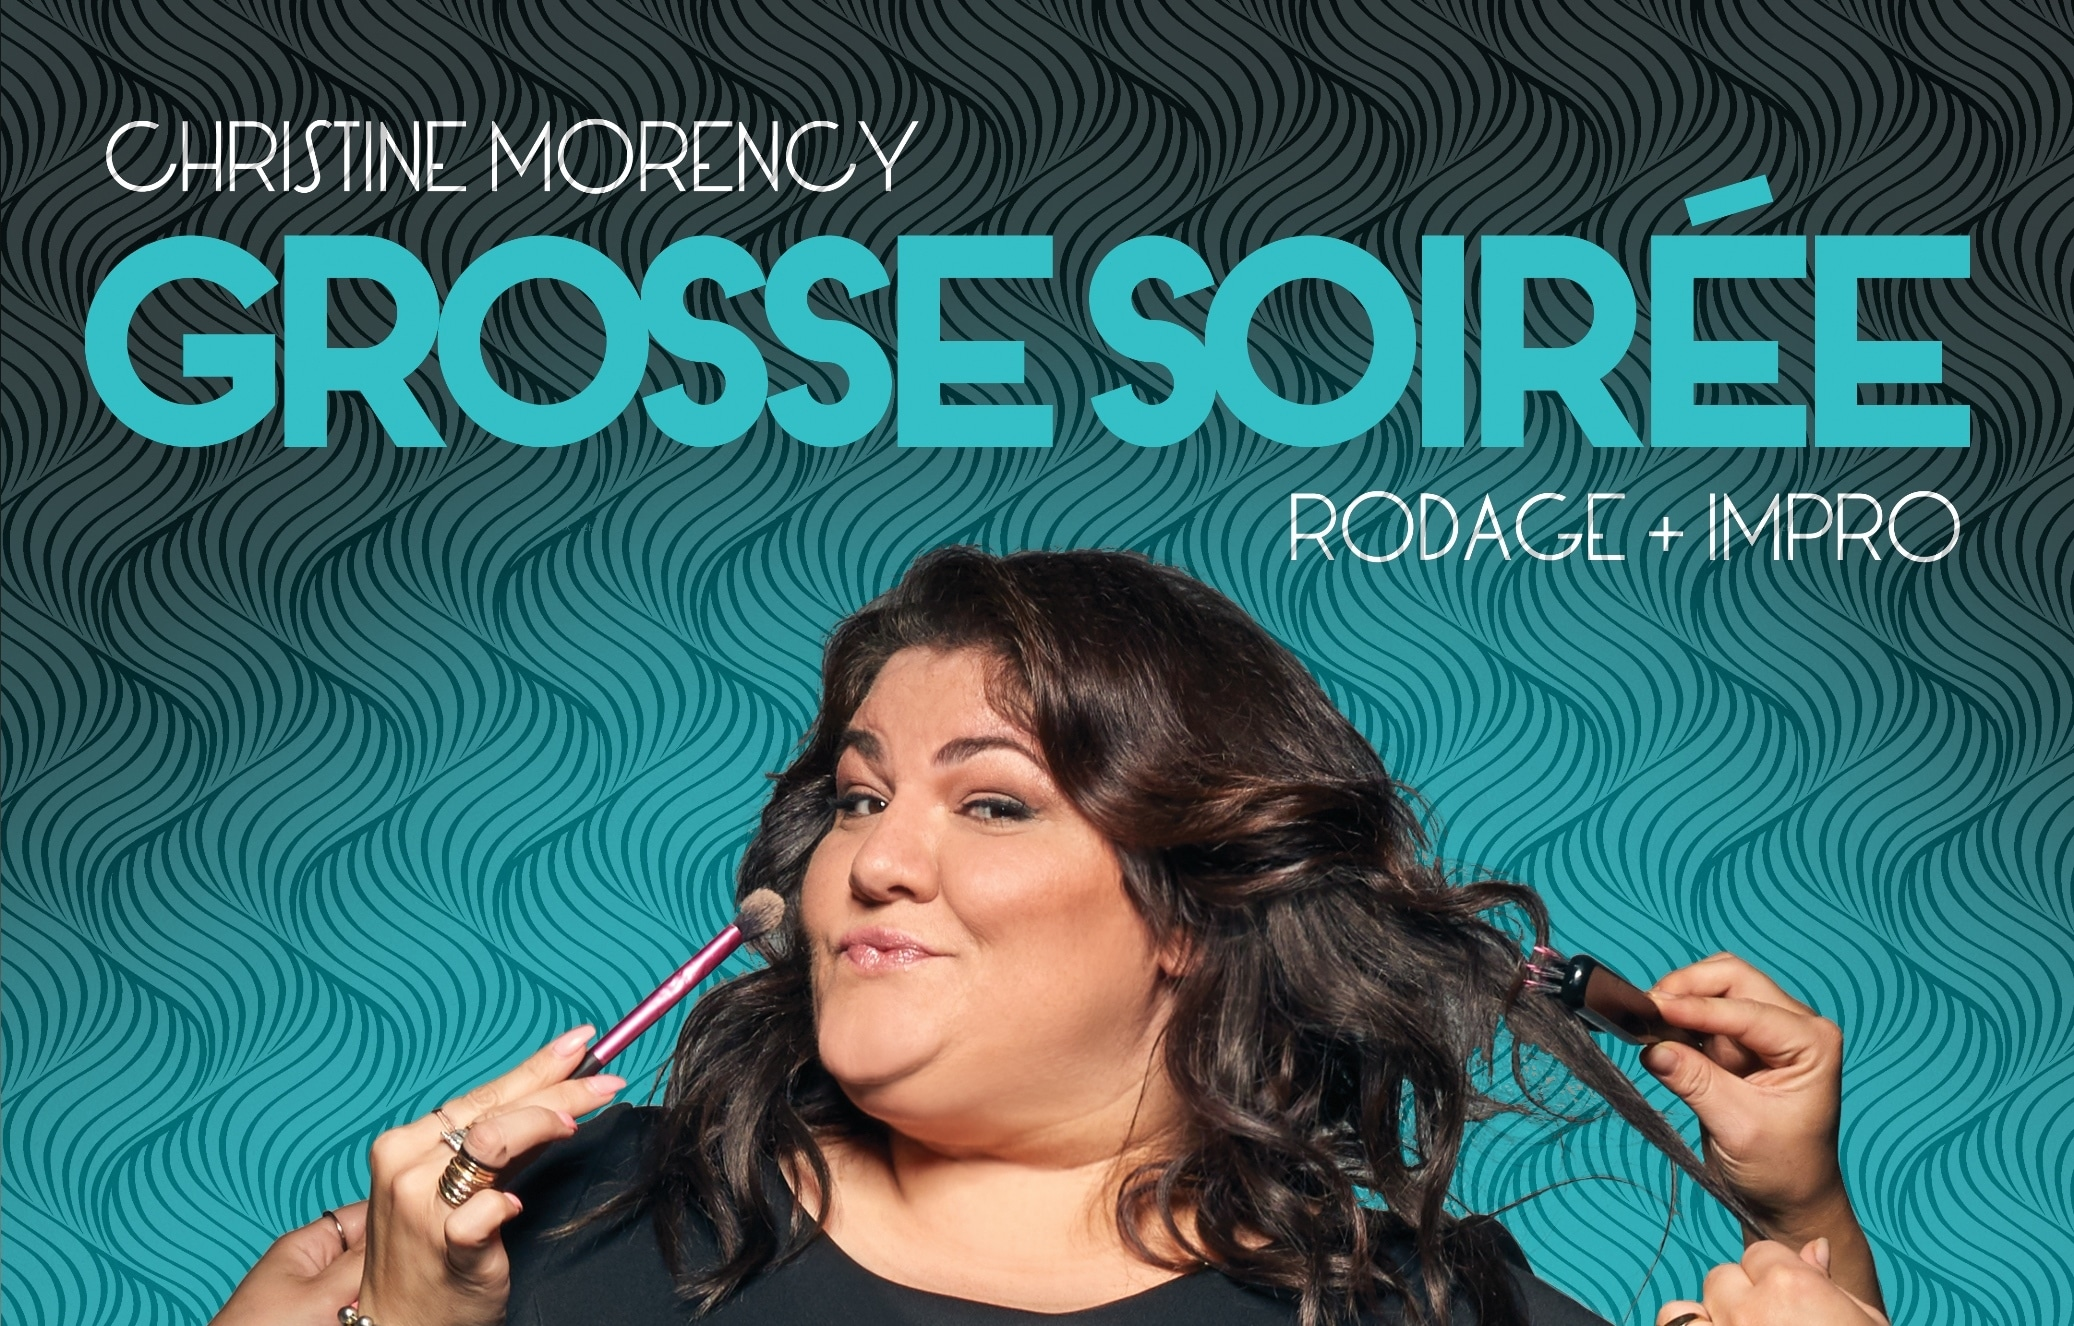 MORENCY CHRISTINE affiche 2020 horizontale